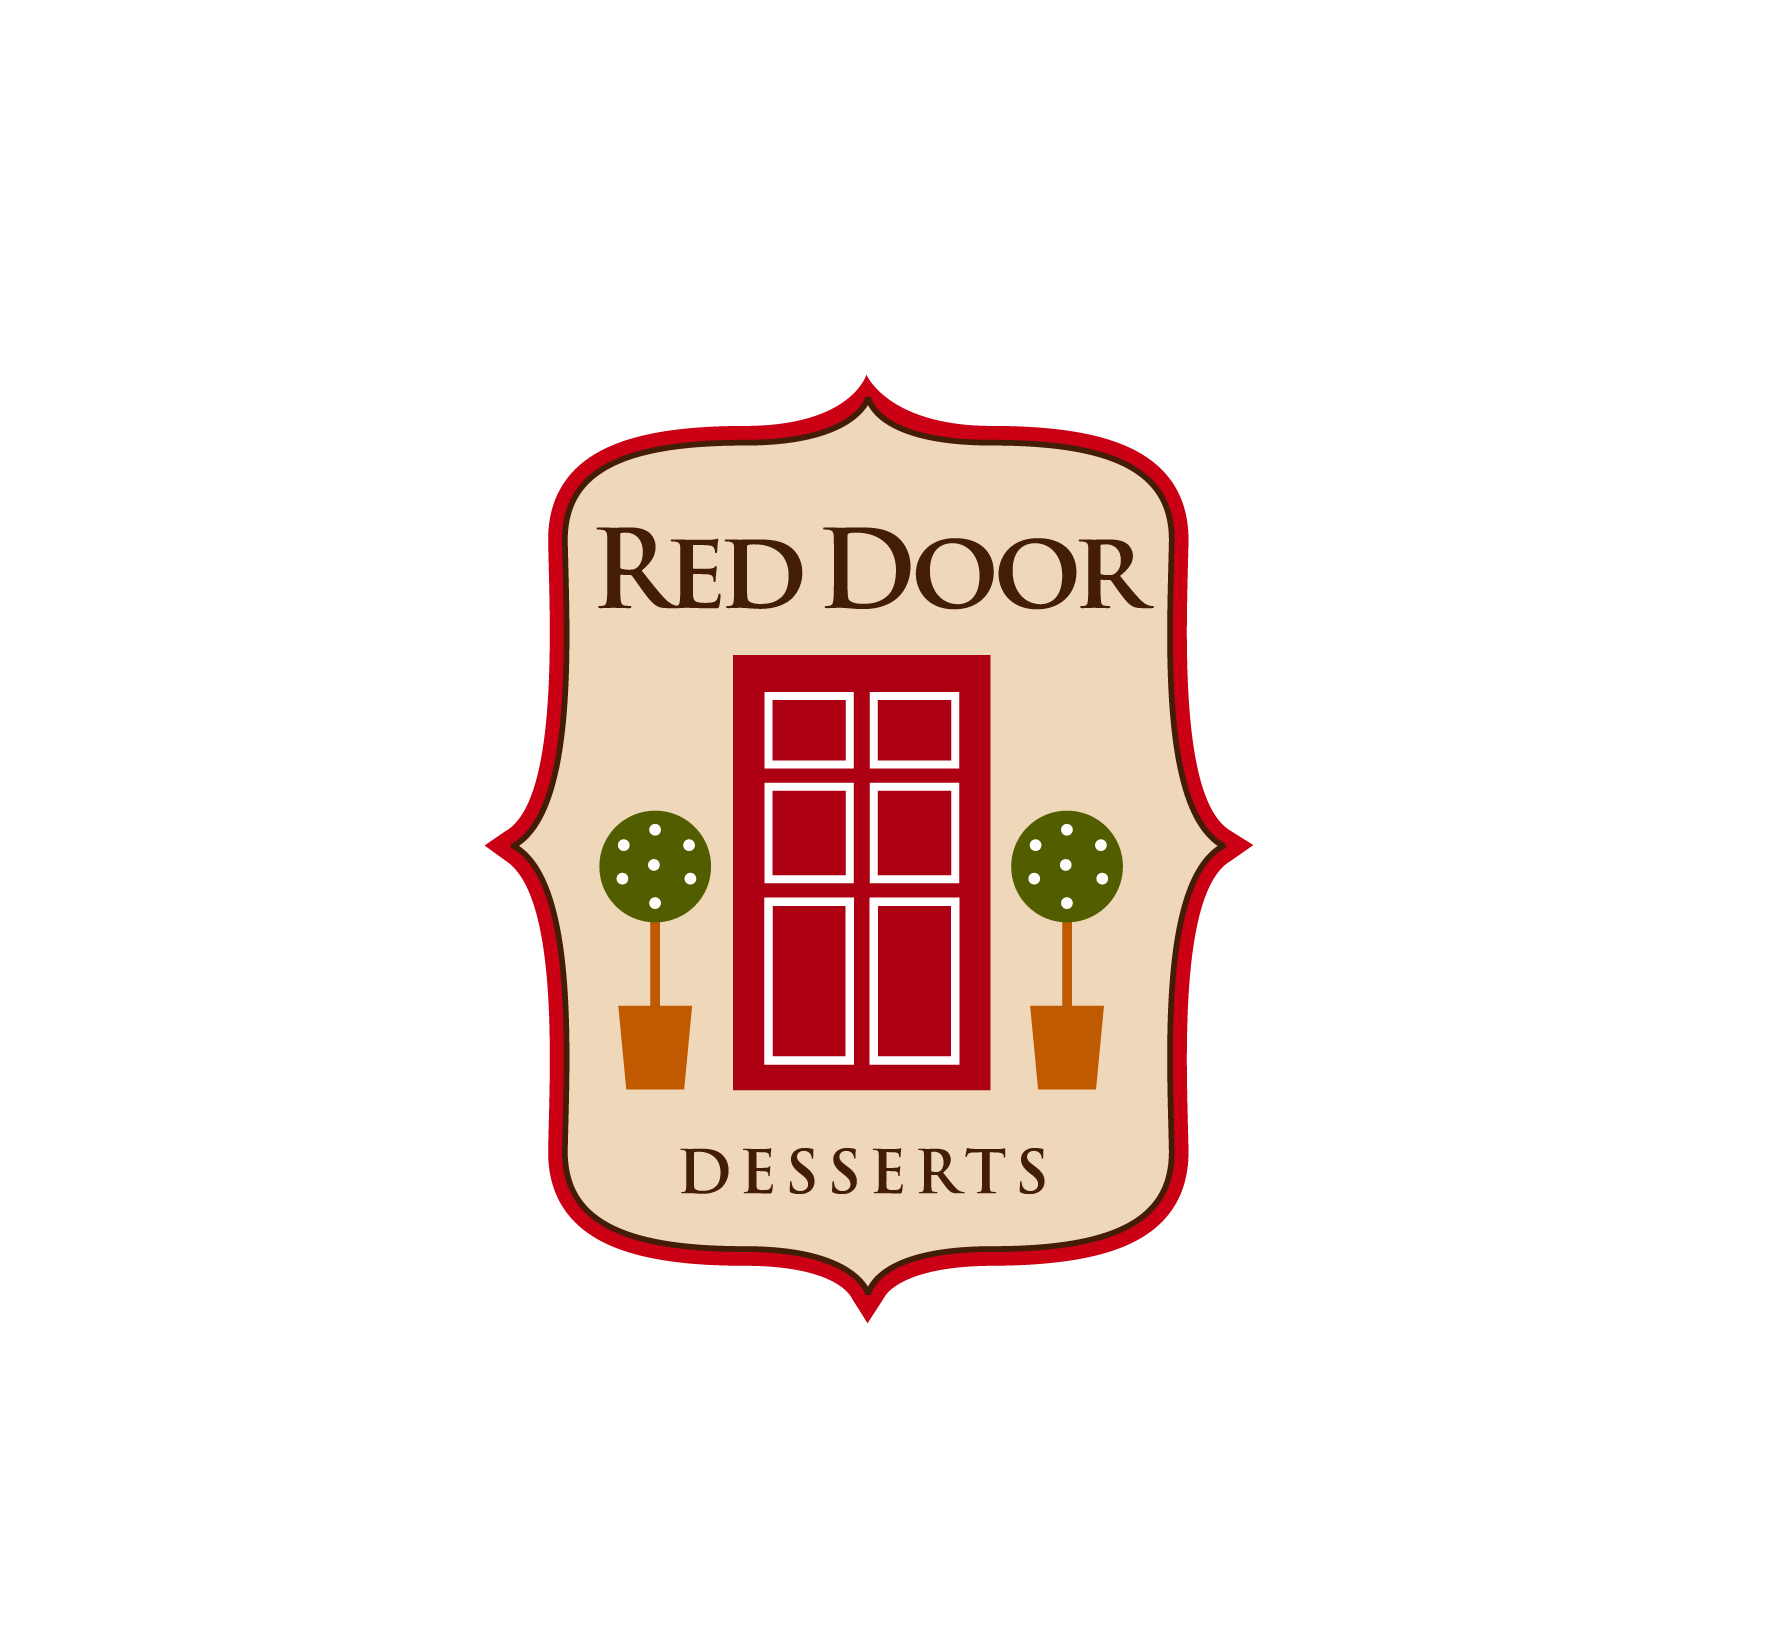 Logo Design by luna - Entry No. 69 in the Logo Design Contest Fun Logo Design for Red Door Desserts.